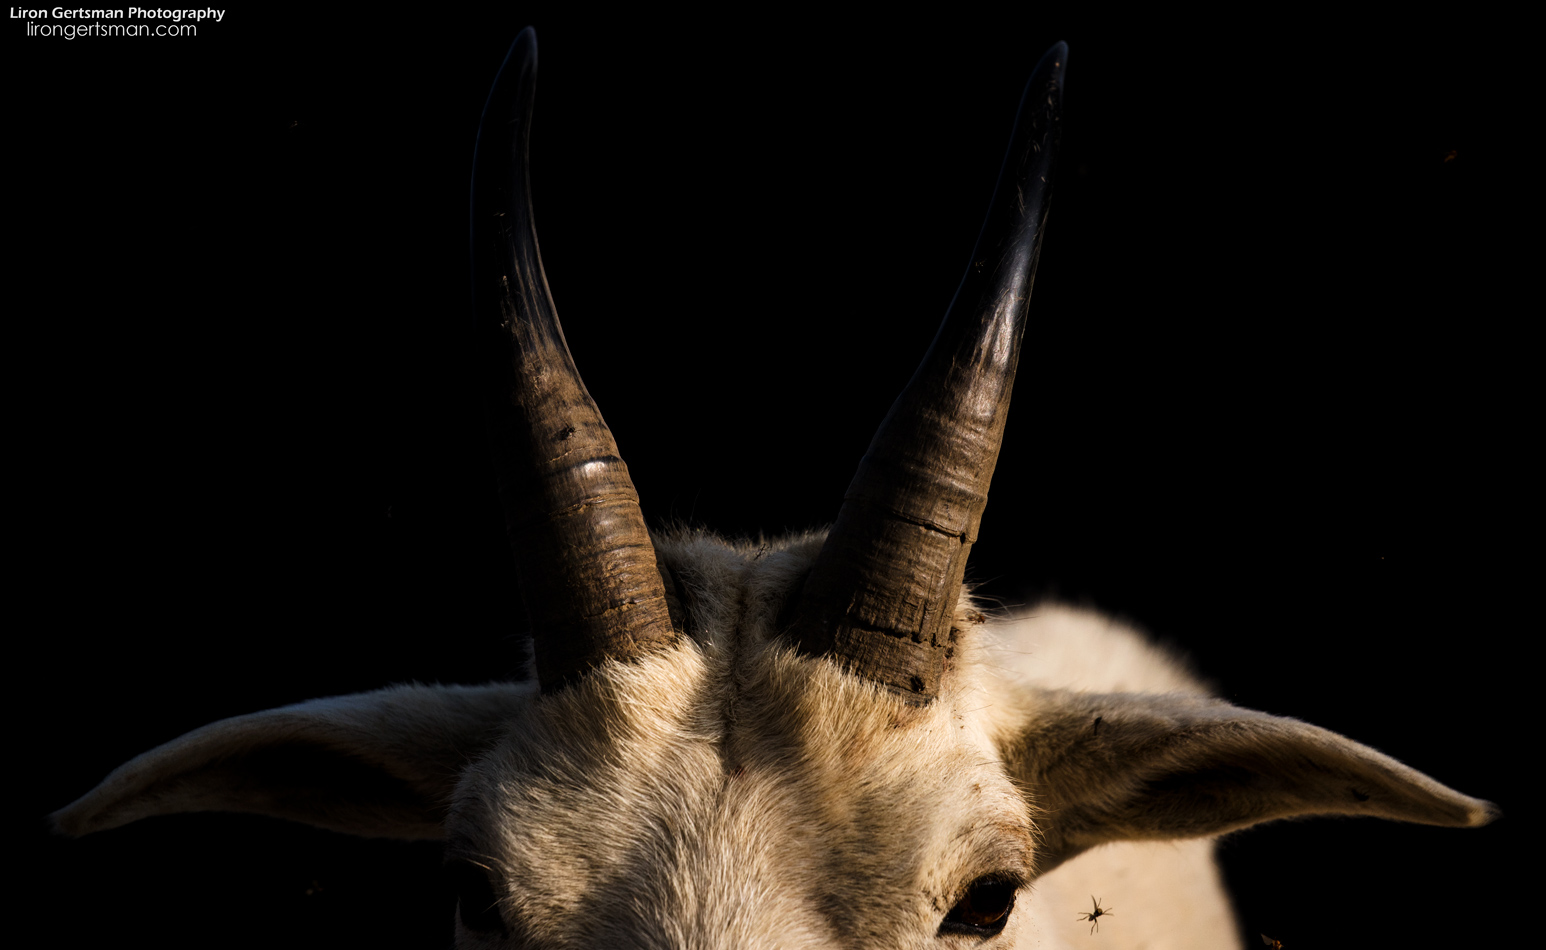 Whenever a large billy goat would approach, I got a good look at the horns, and it served as a strong reminder of their potential power. On the last day, I made it my mission to get a photo showcasing this. When a goat stood in the spotlight of the morning sunshine against a hillside in shade, I focused on the horns and got this shot.